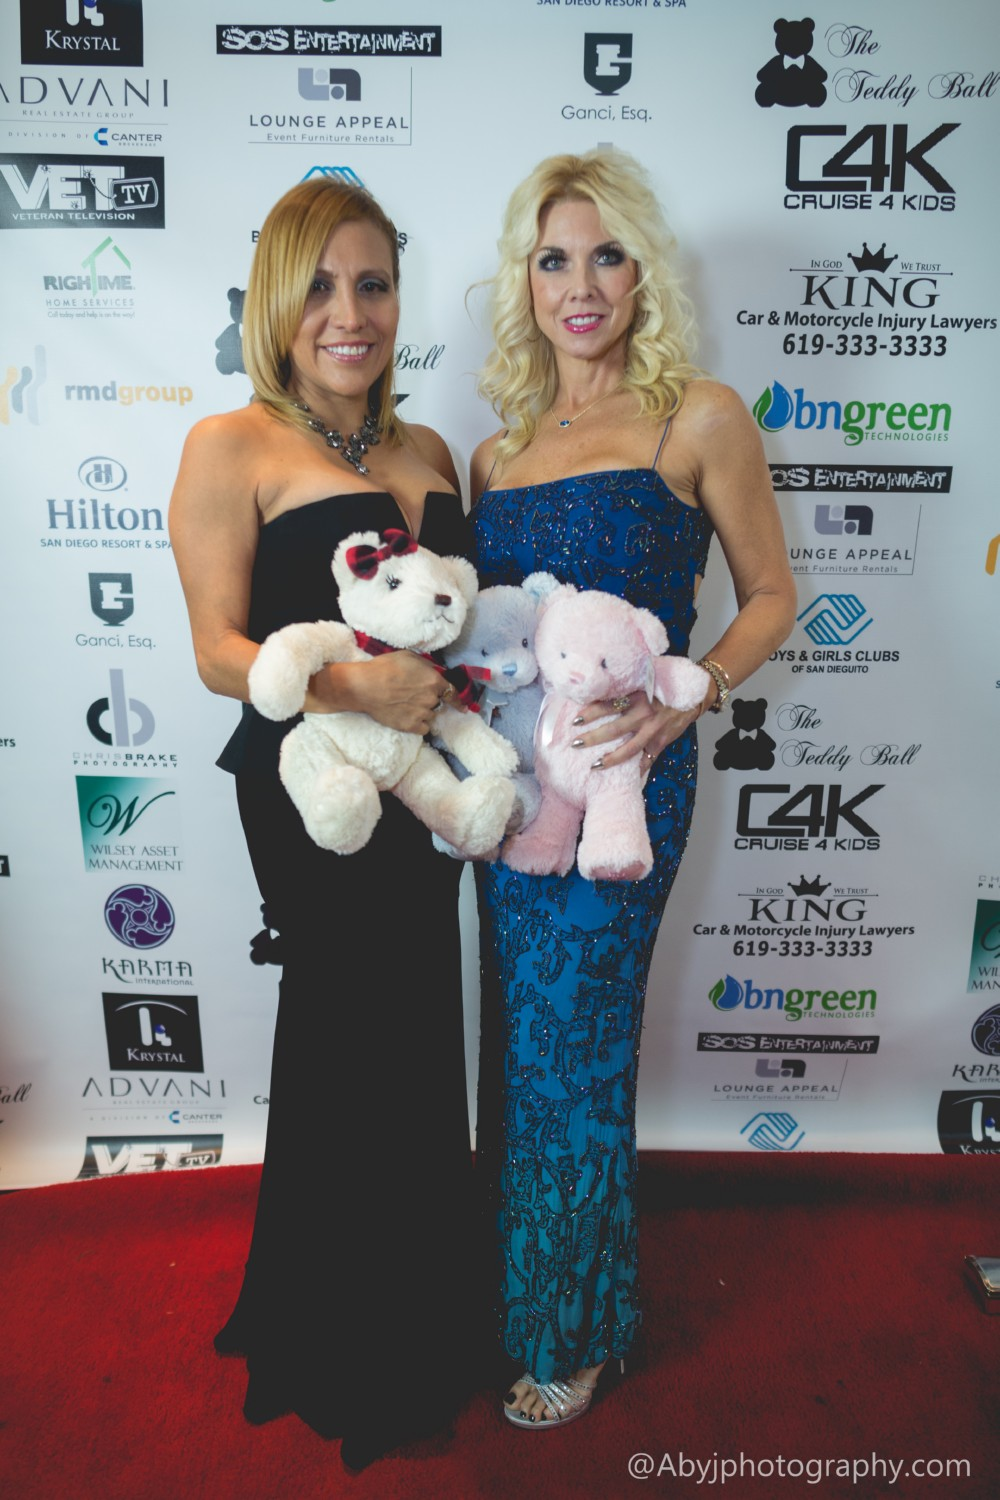 ABYJ_Photography_2016_Teddy_Ball - 289.jpg